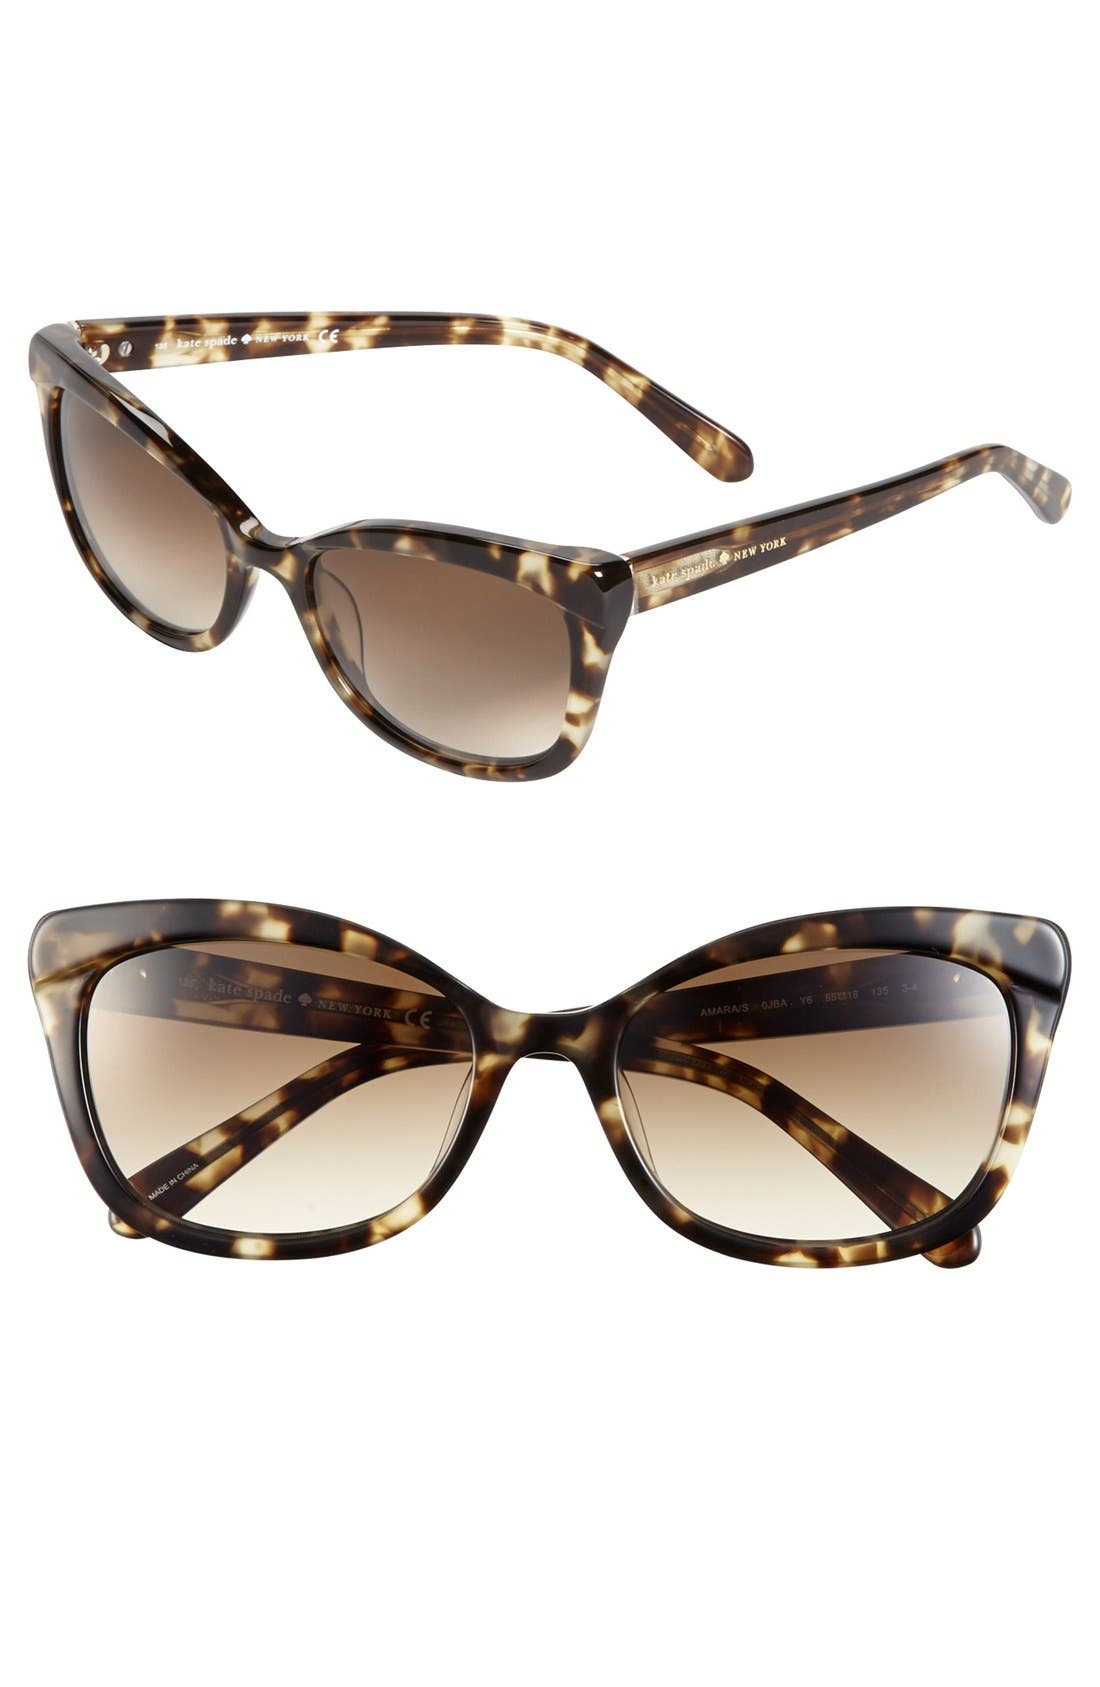 Main Image - kate spade new york 'amaras' 55mm sunglasses